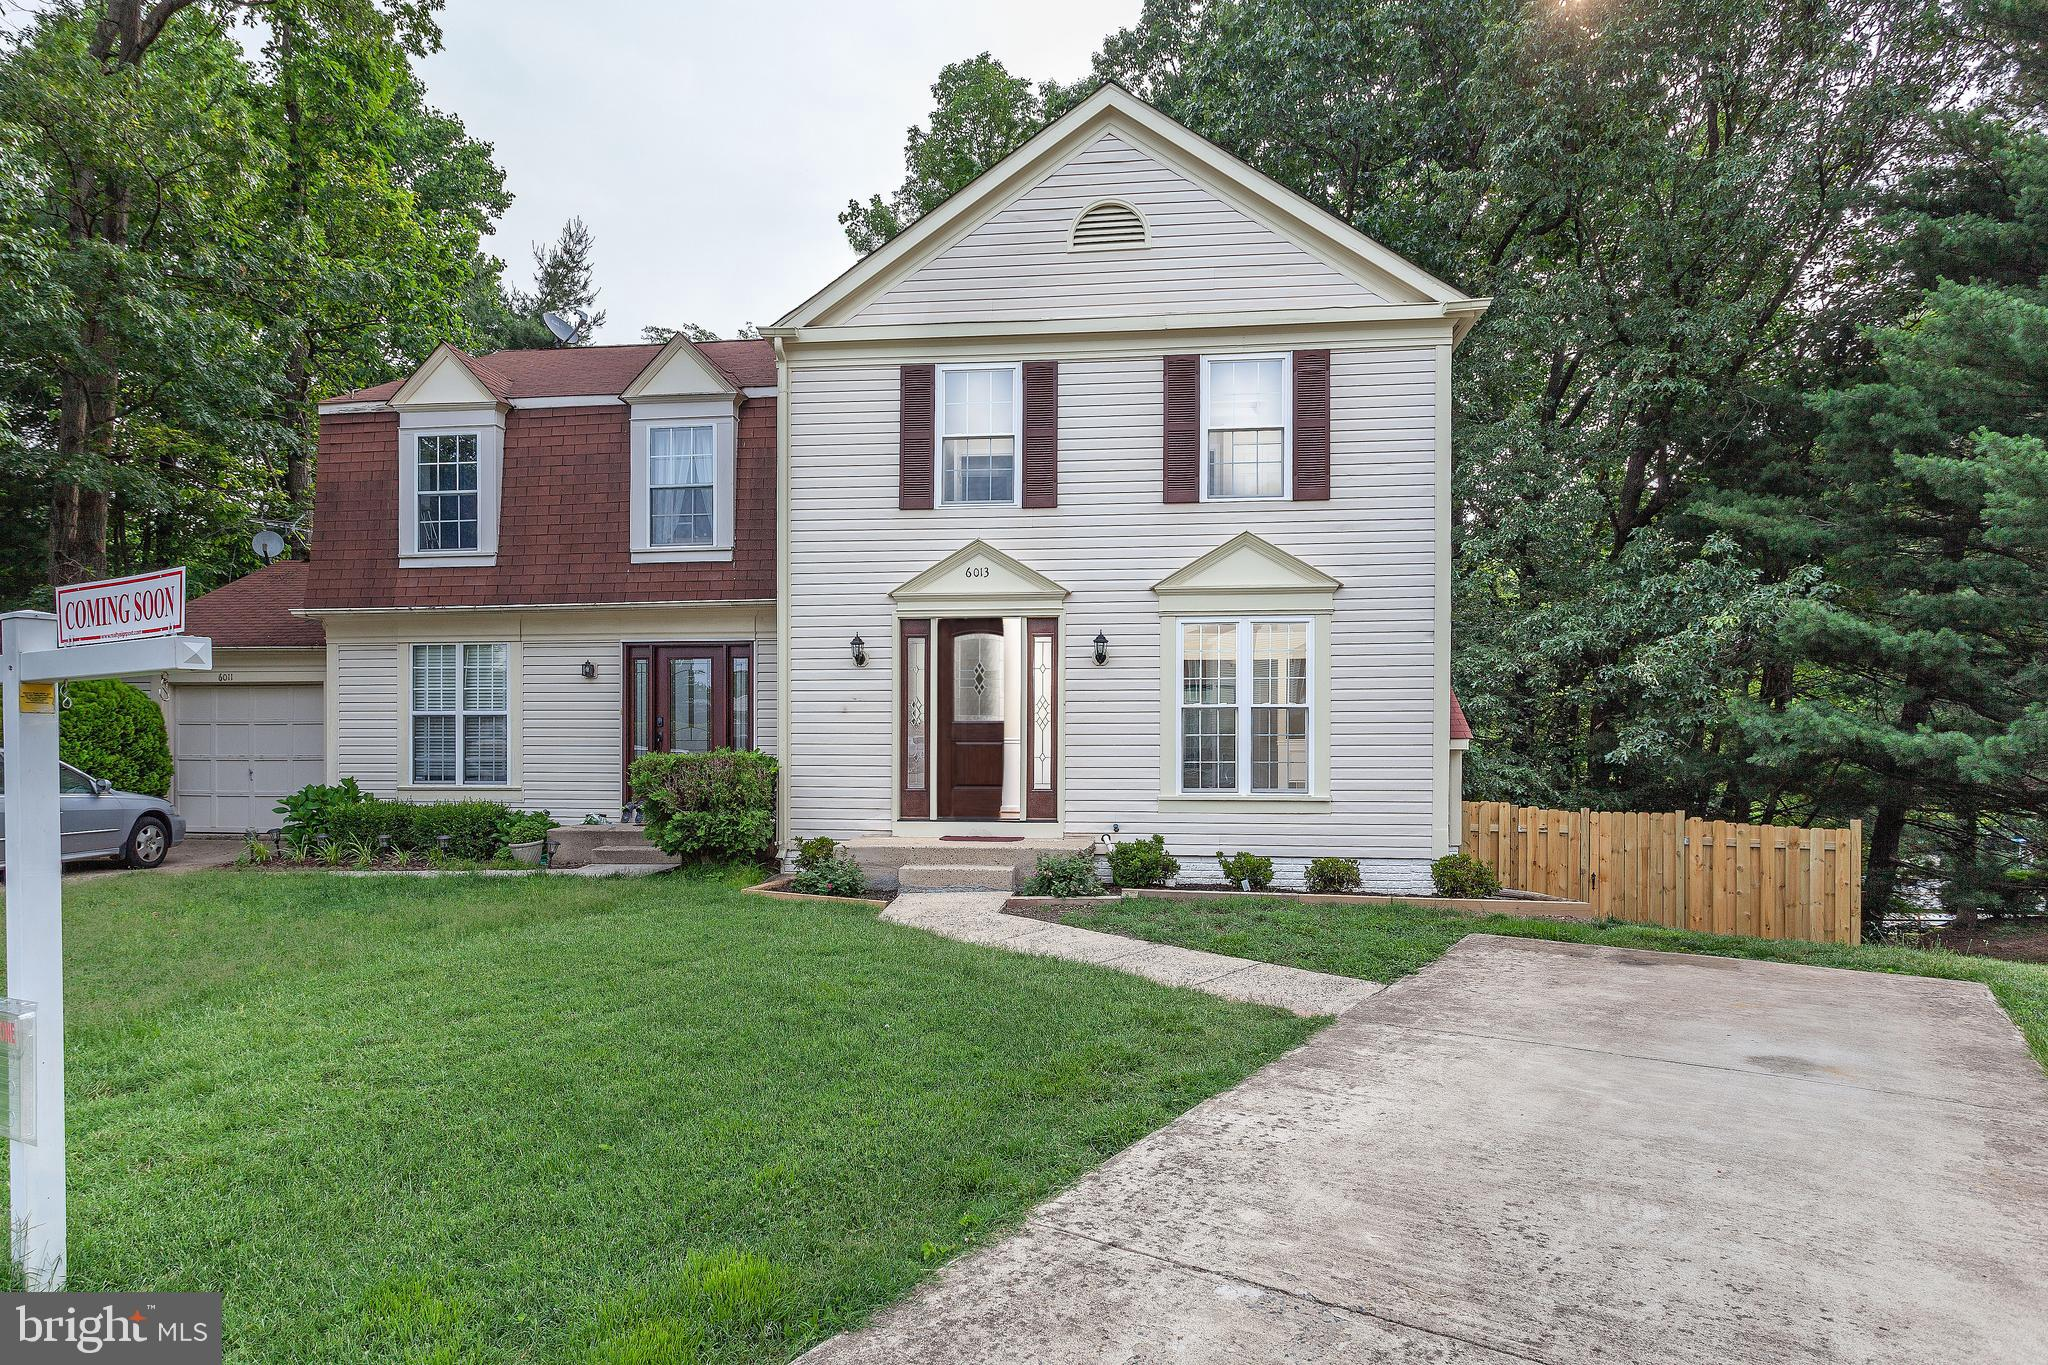 Completely renovated duplex style home from     the new roof to the new fence in the private back yard including new heat pump in & out. Lower       level has a full bath and recreation room/den.      Enjoy Burke Centre Conservancy amenities, minutes to shopping, restaurants, VRE.